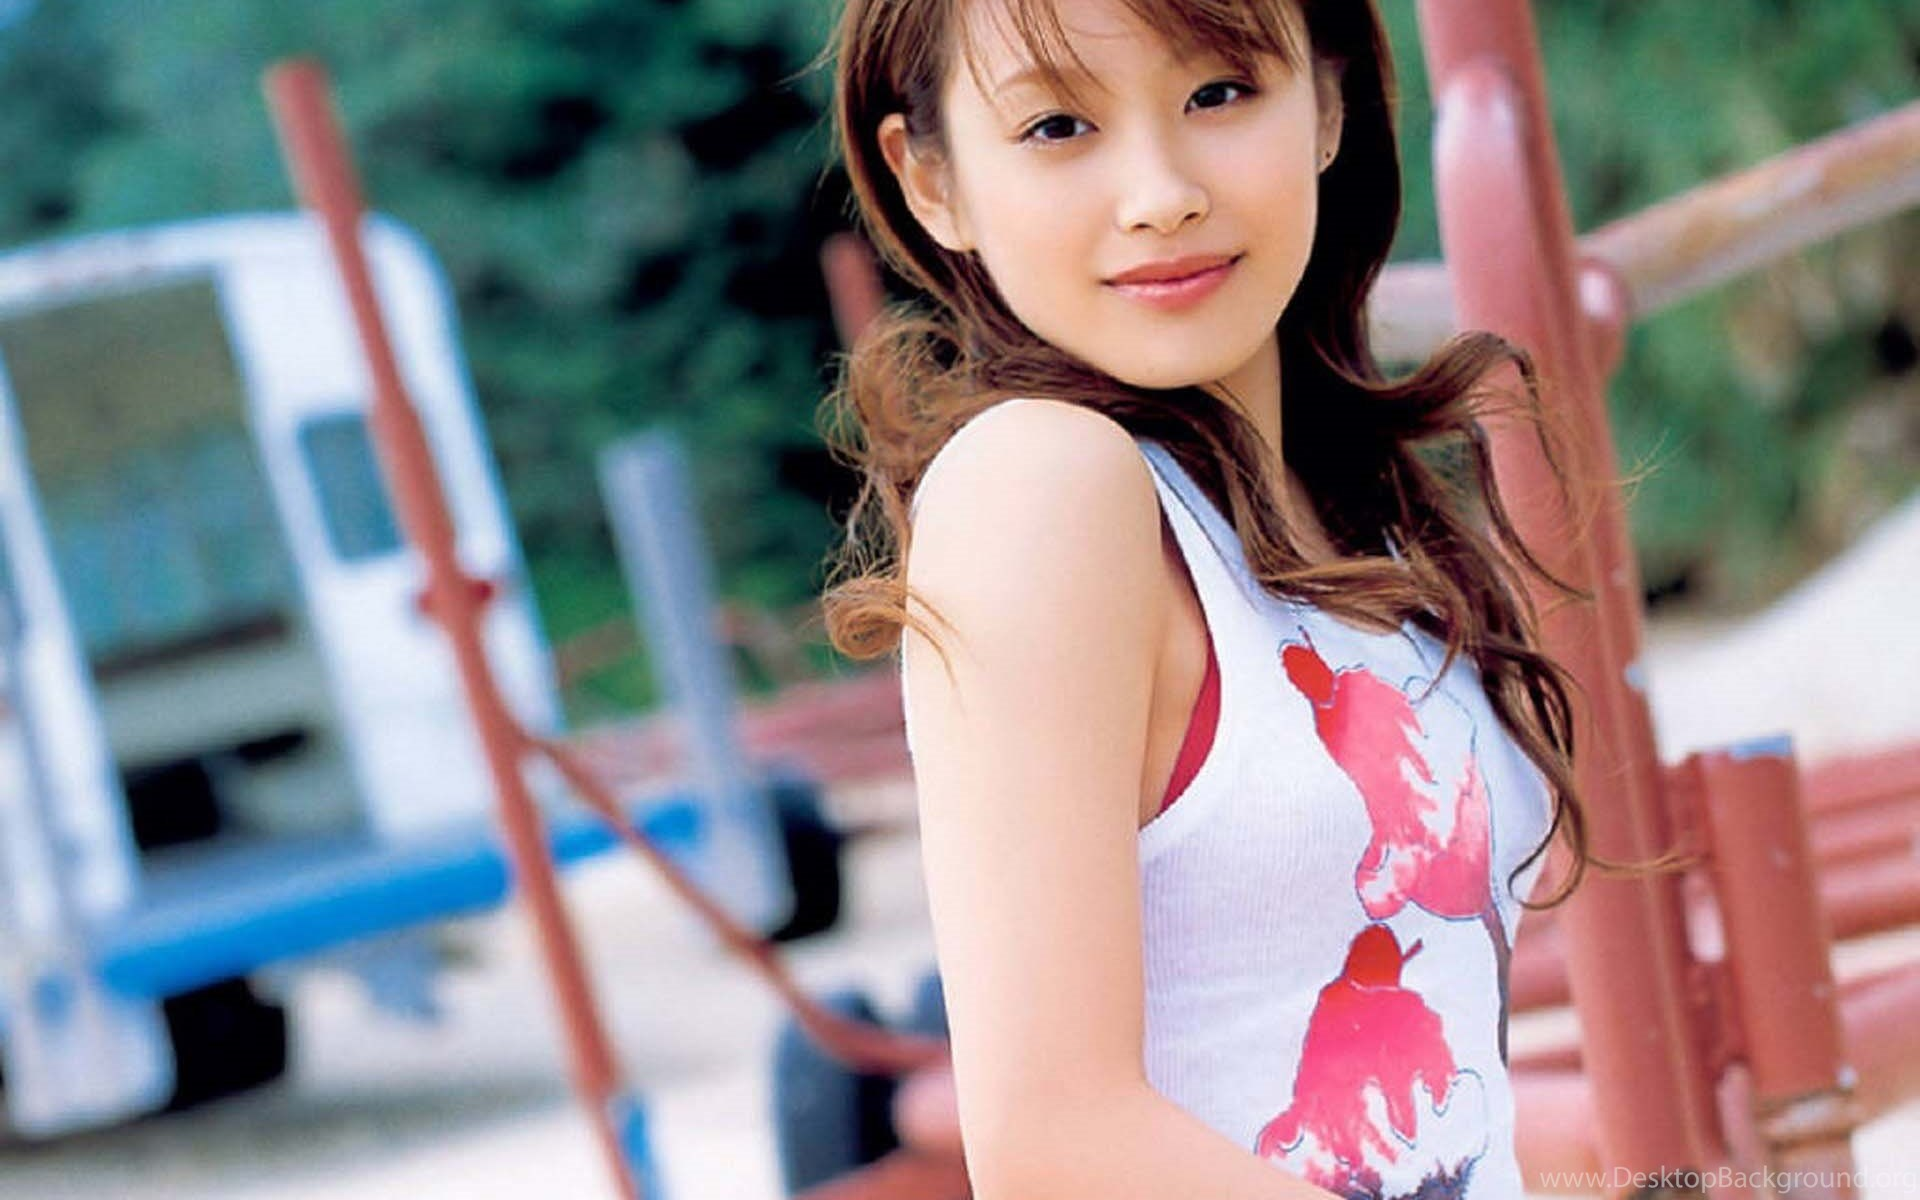 beautiful japanese girl wallpapers – only hd – daily backgrounds in